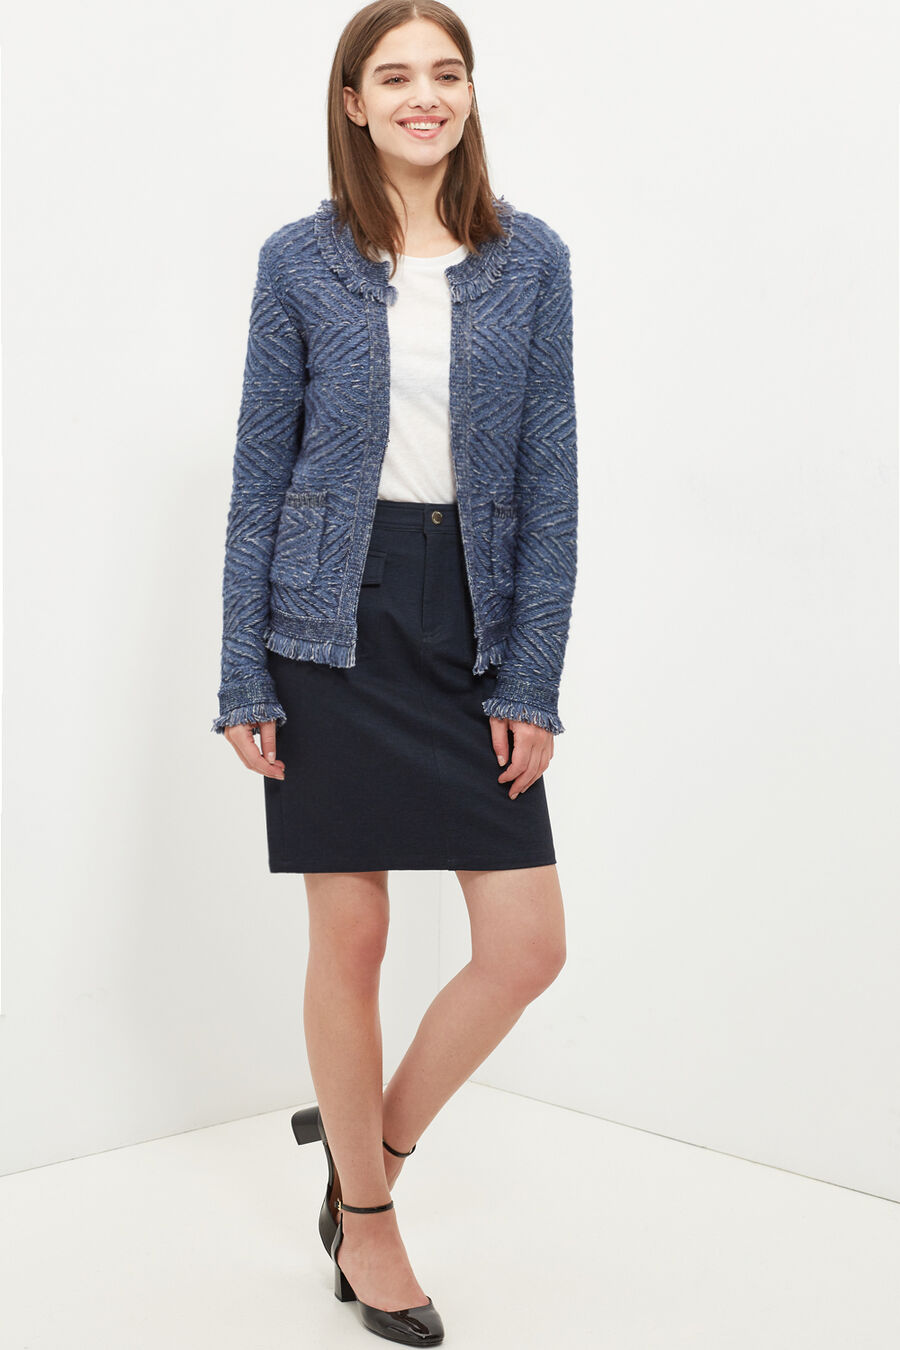 Structured jacket